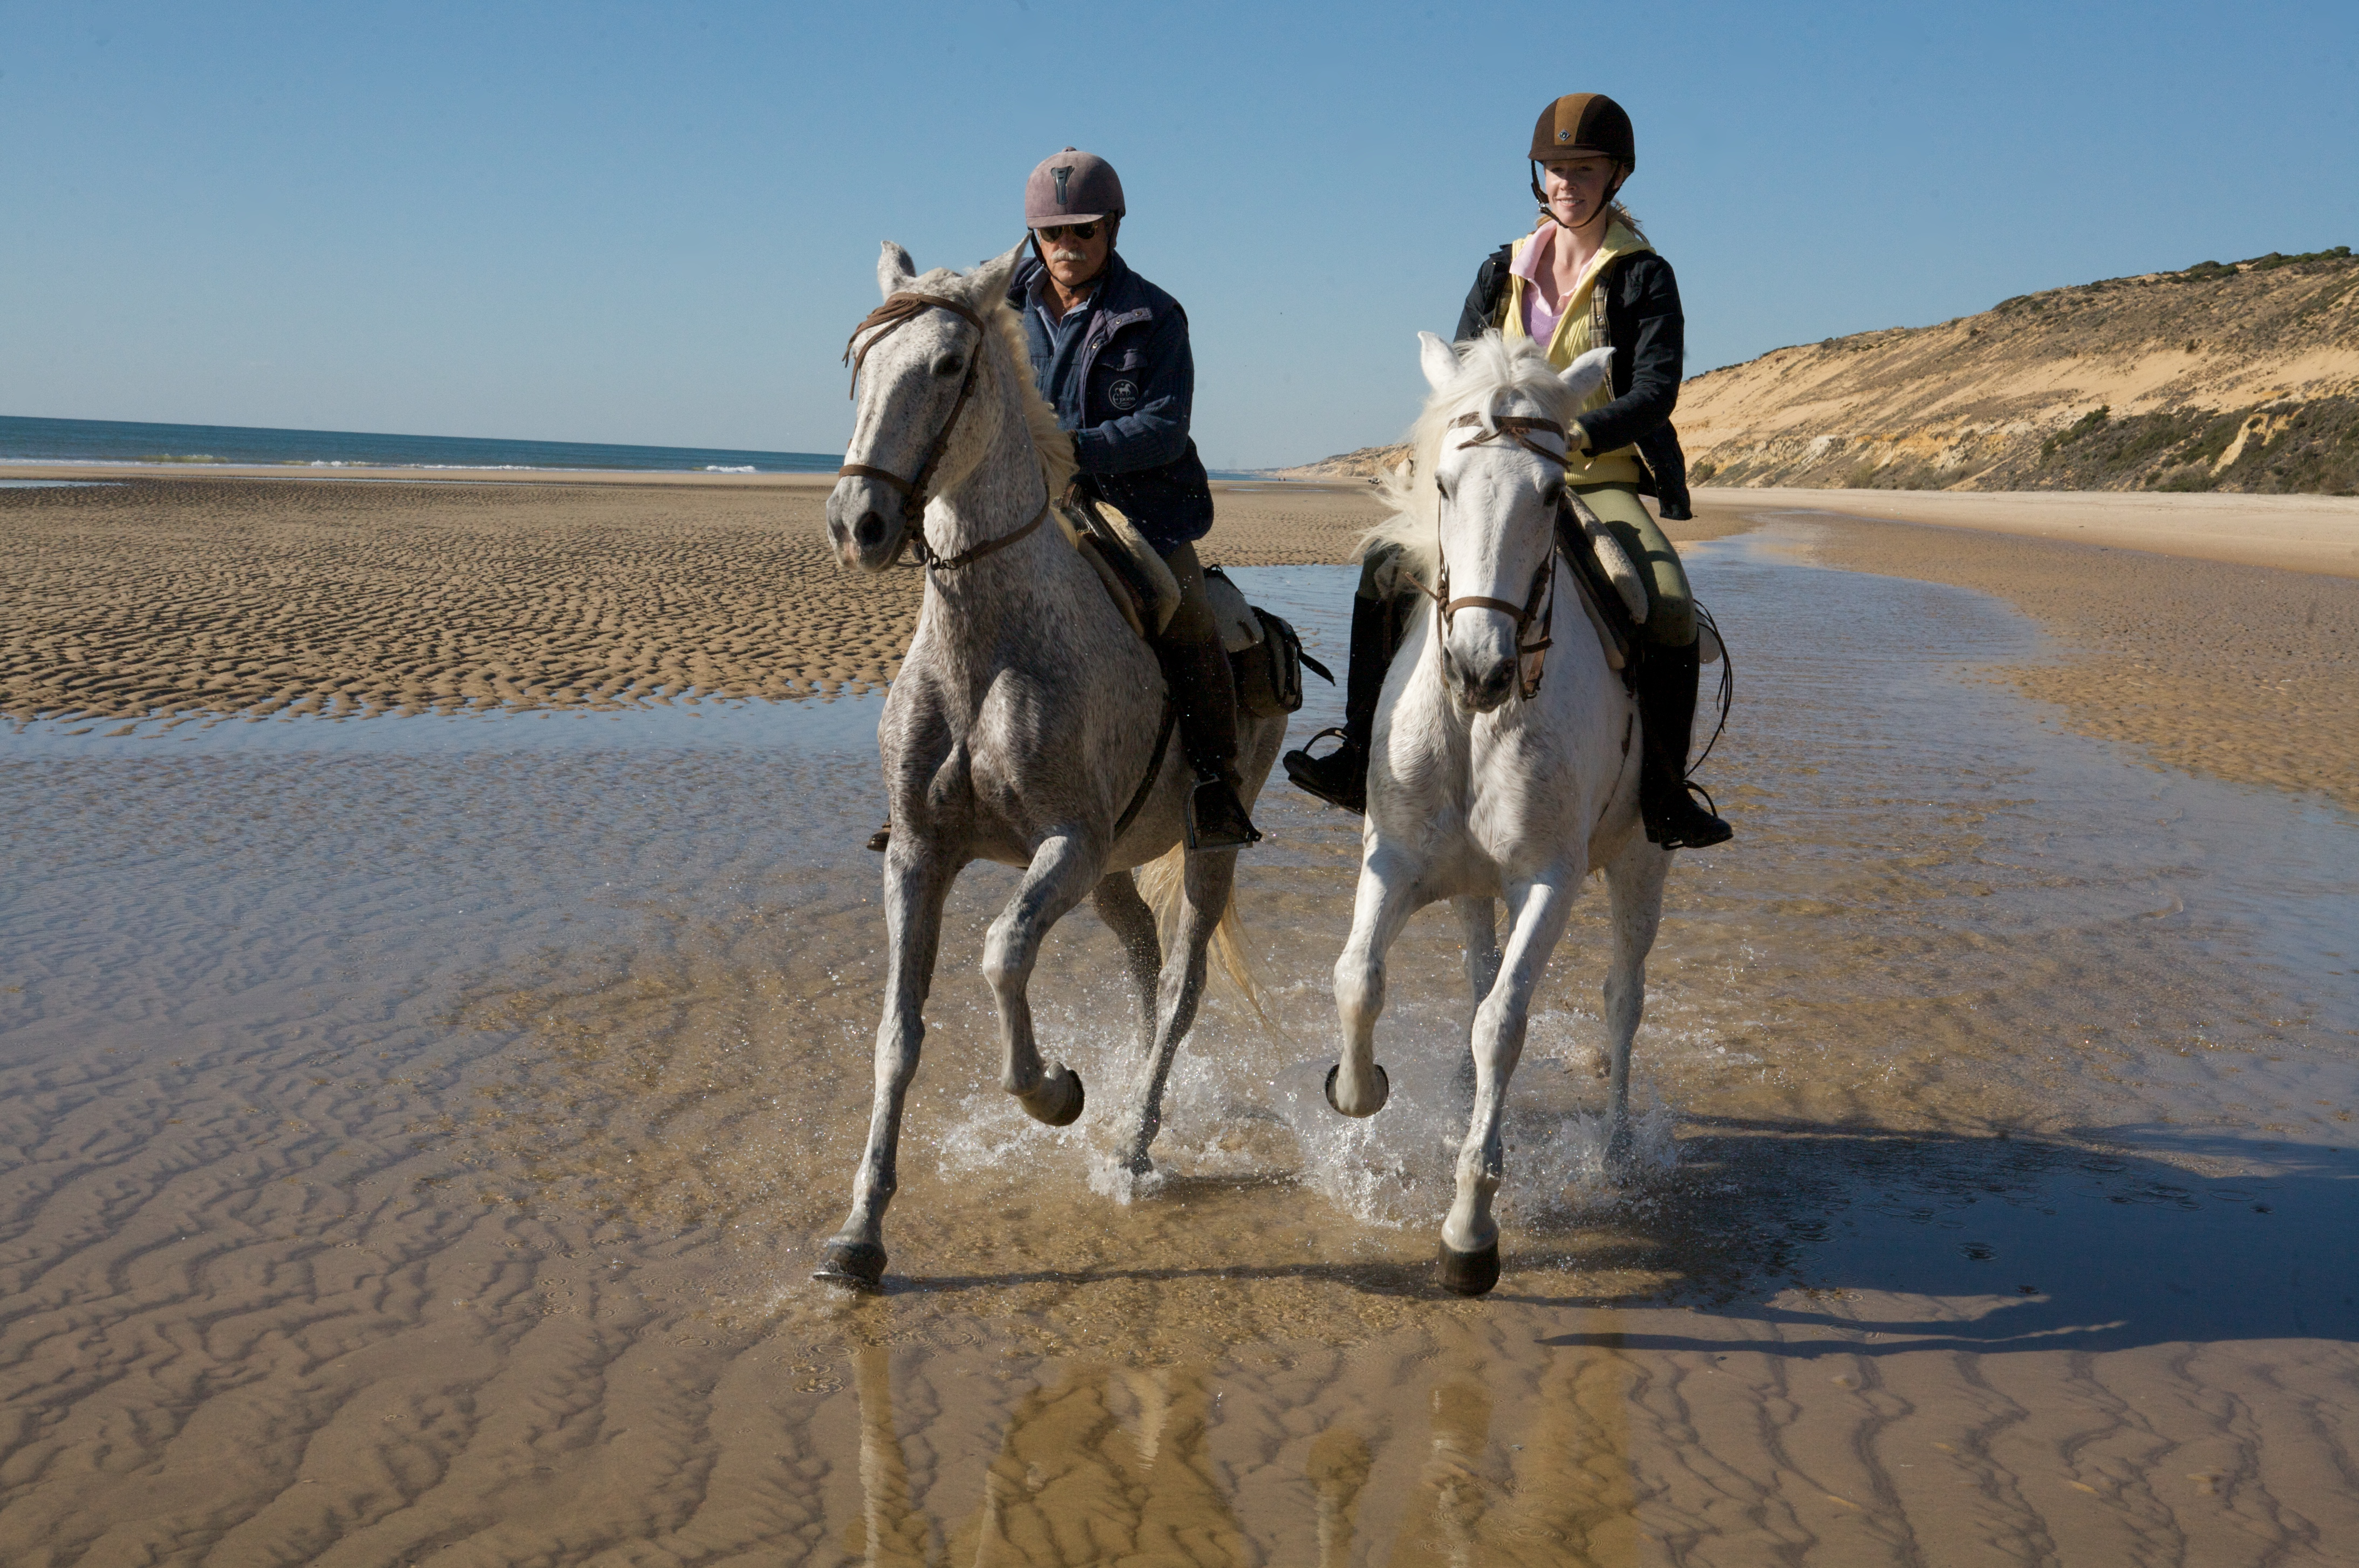 Fernando Garcia and Darley Newman canter the beaches of Donana National Park for the Equitrekking Southern Spain episode.